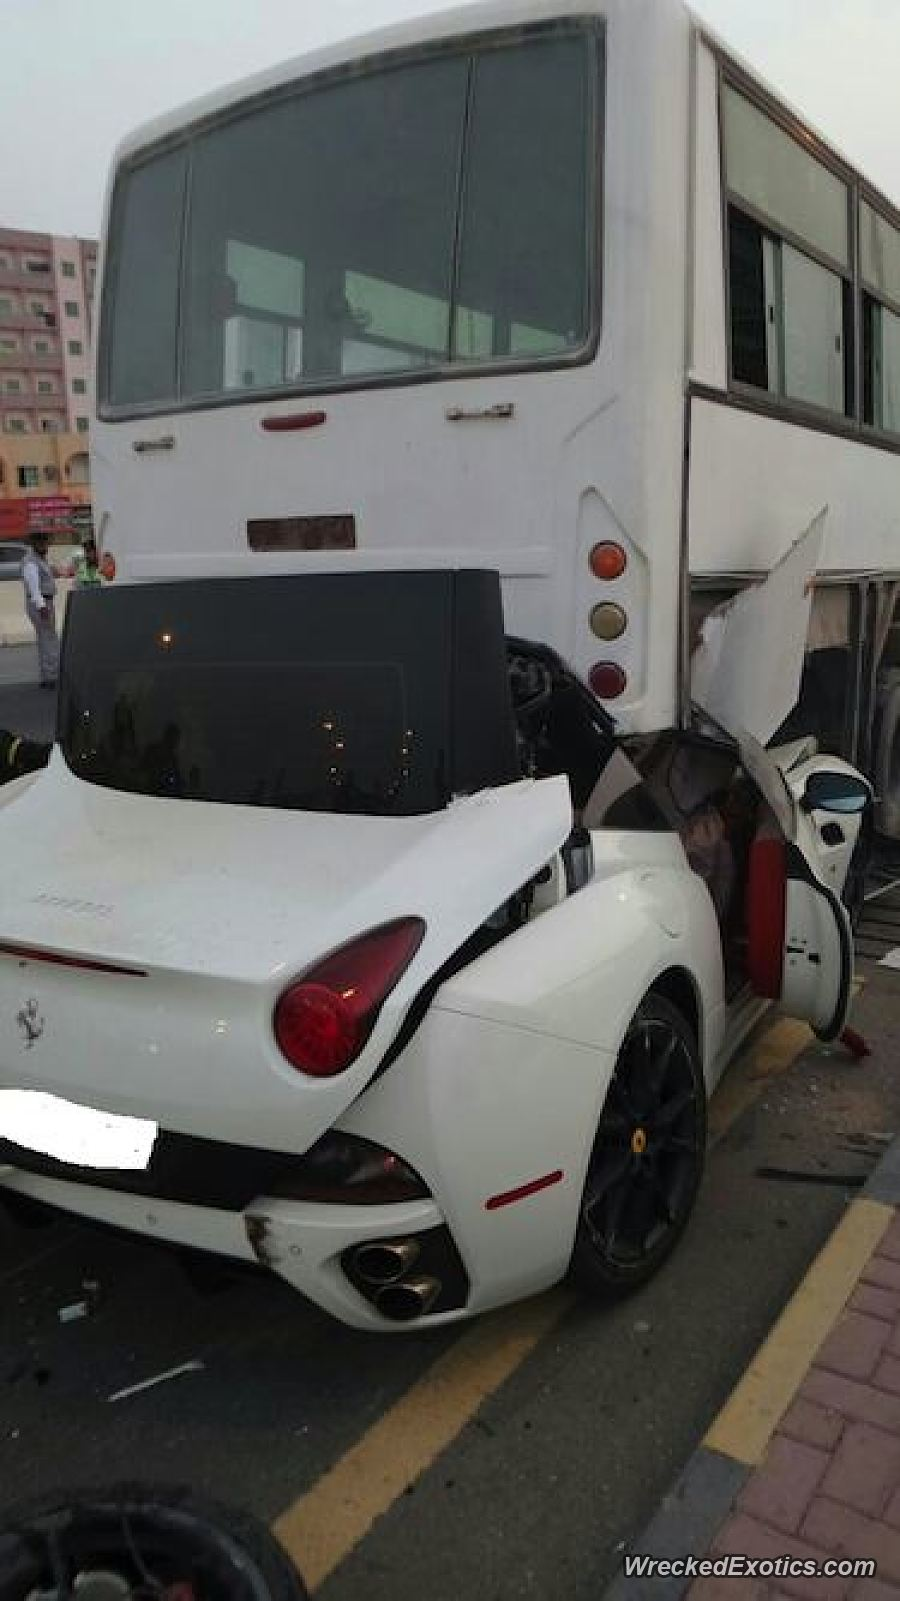 Ferrari California crashes into truck